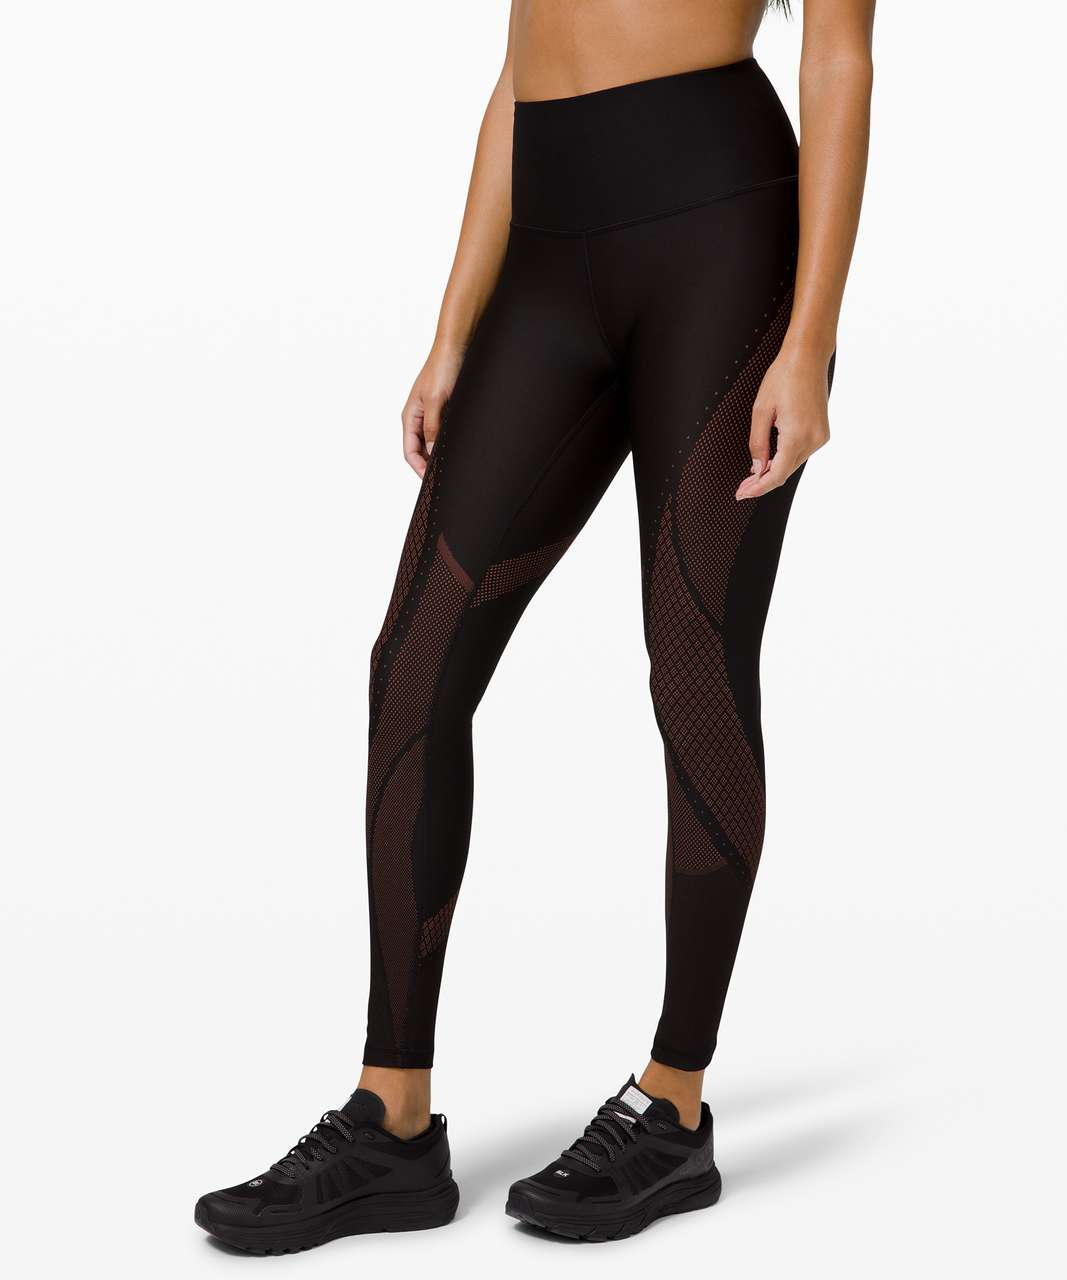 "Lululemon Mapped Out High-Rise Tight 28"" - Black / Ancient Copper"